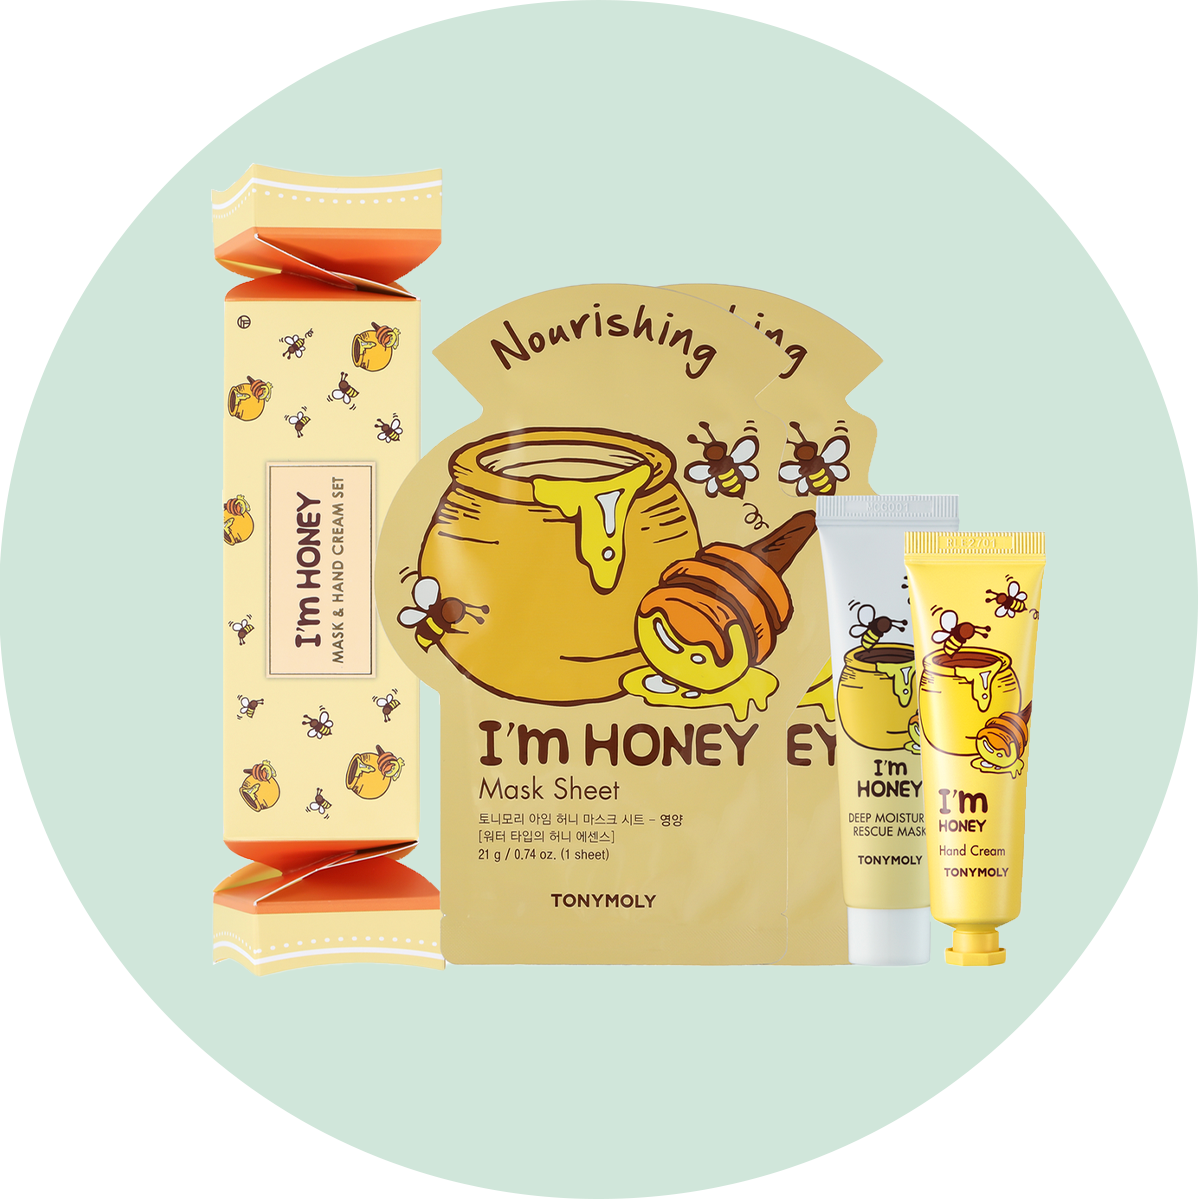 Tony Moly Mask & Hand Cream Cracker Box